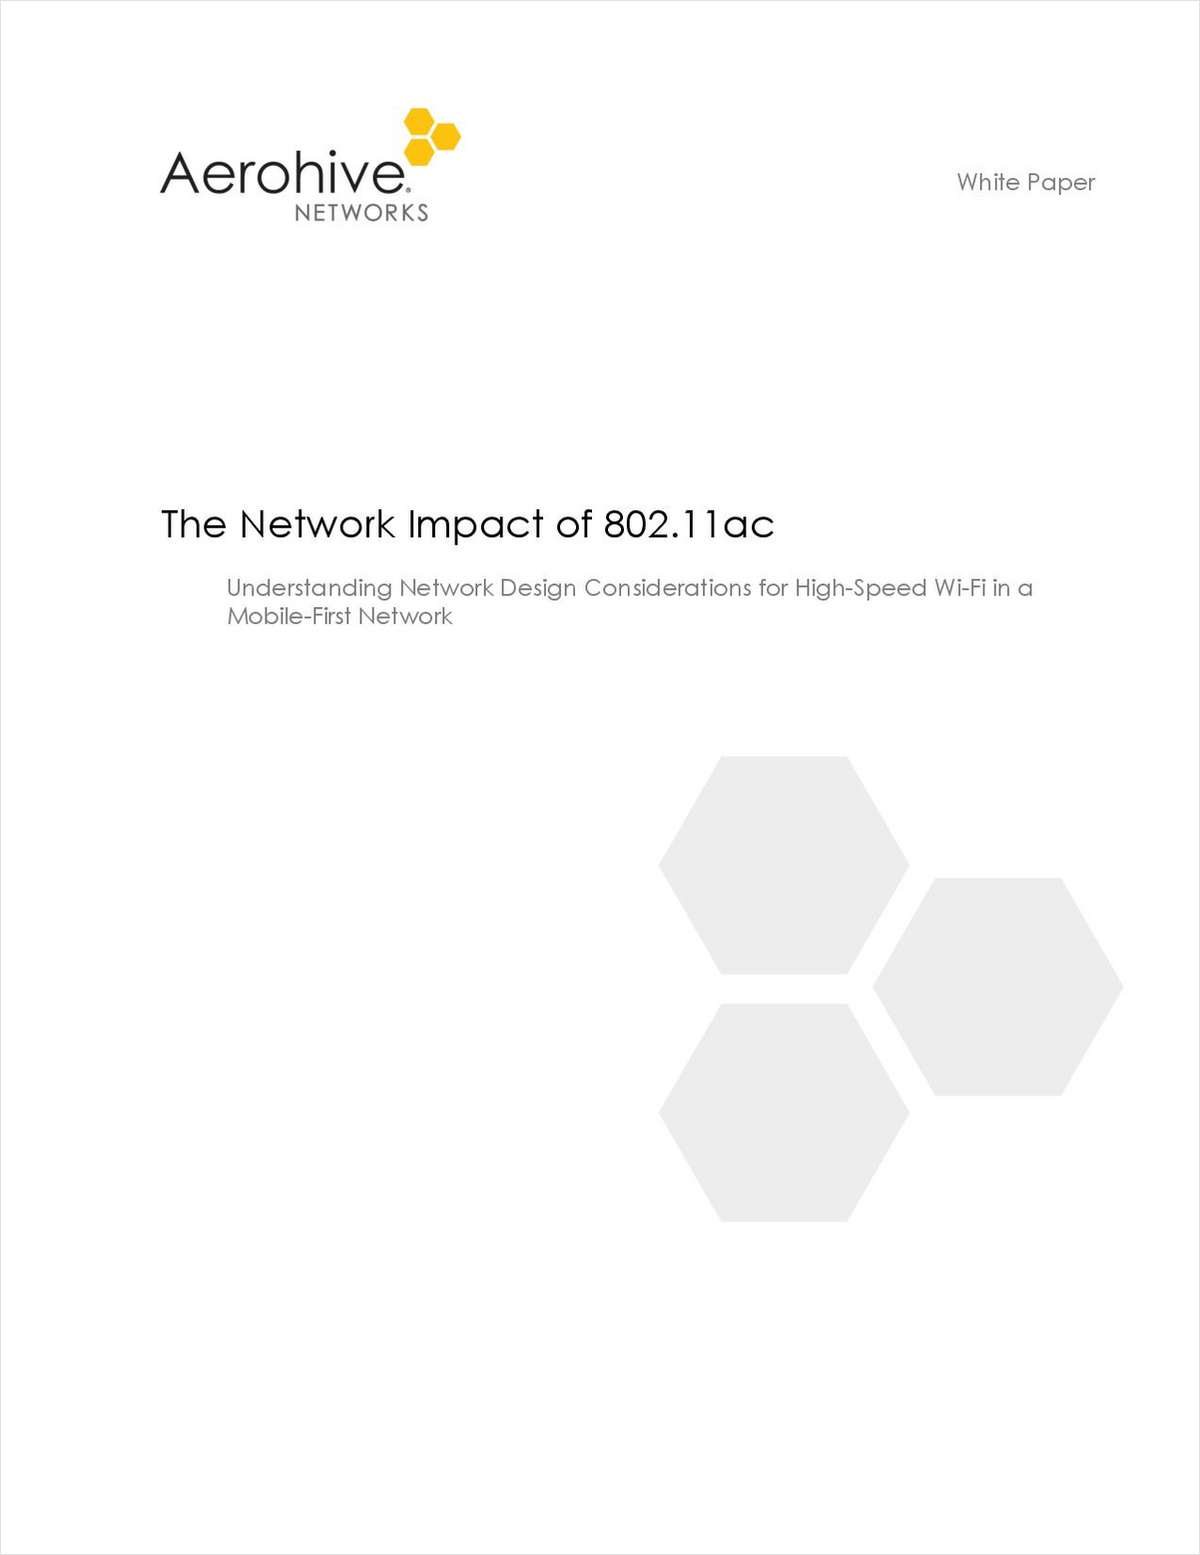 The Network Impact of 802.11ac